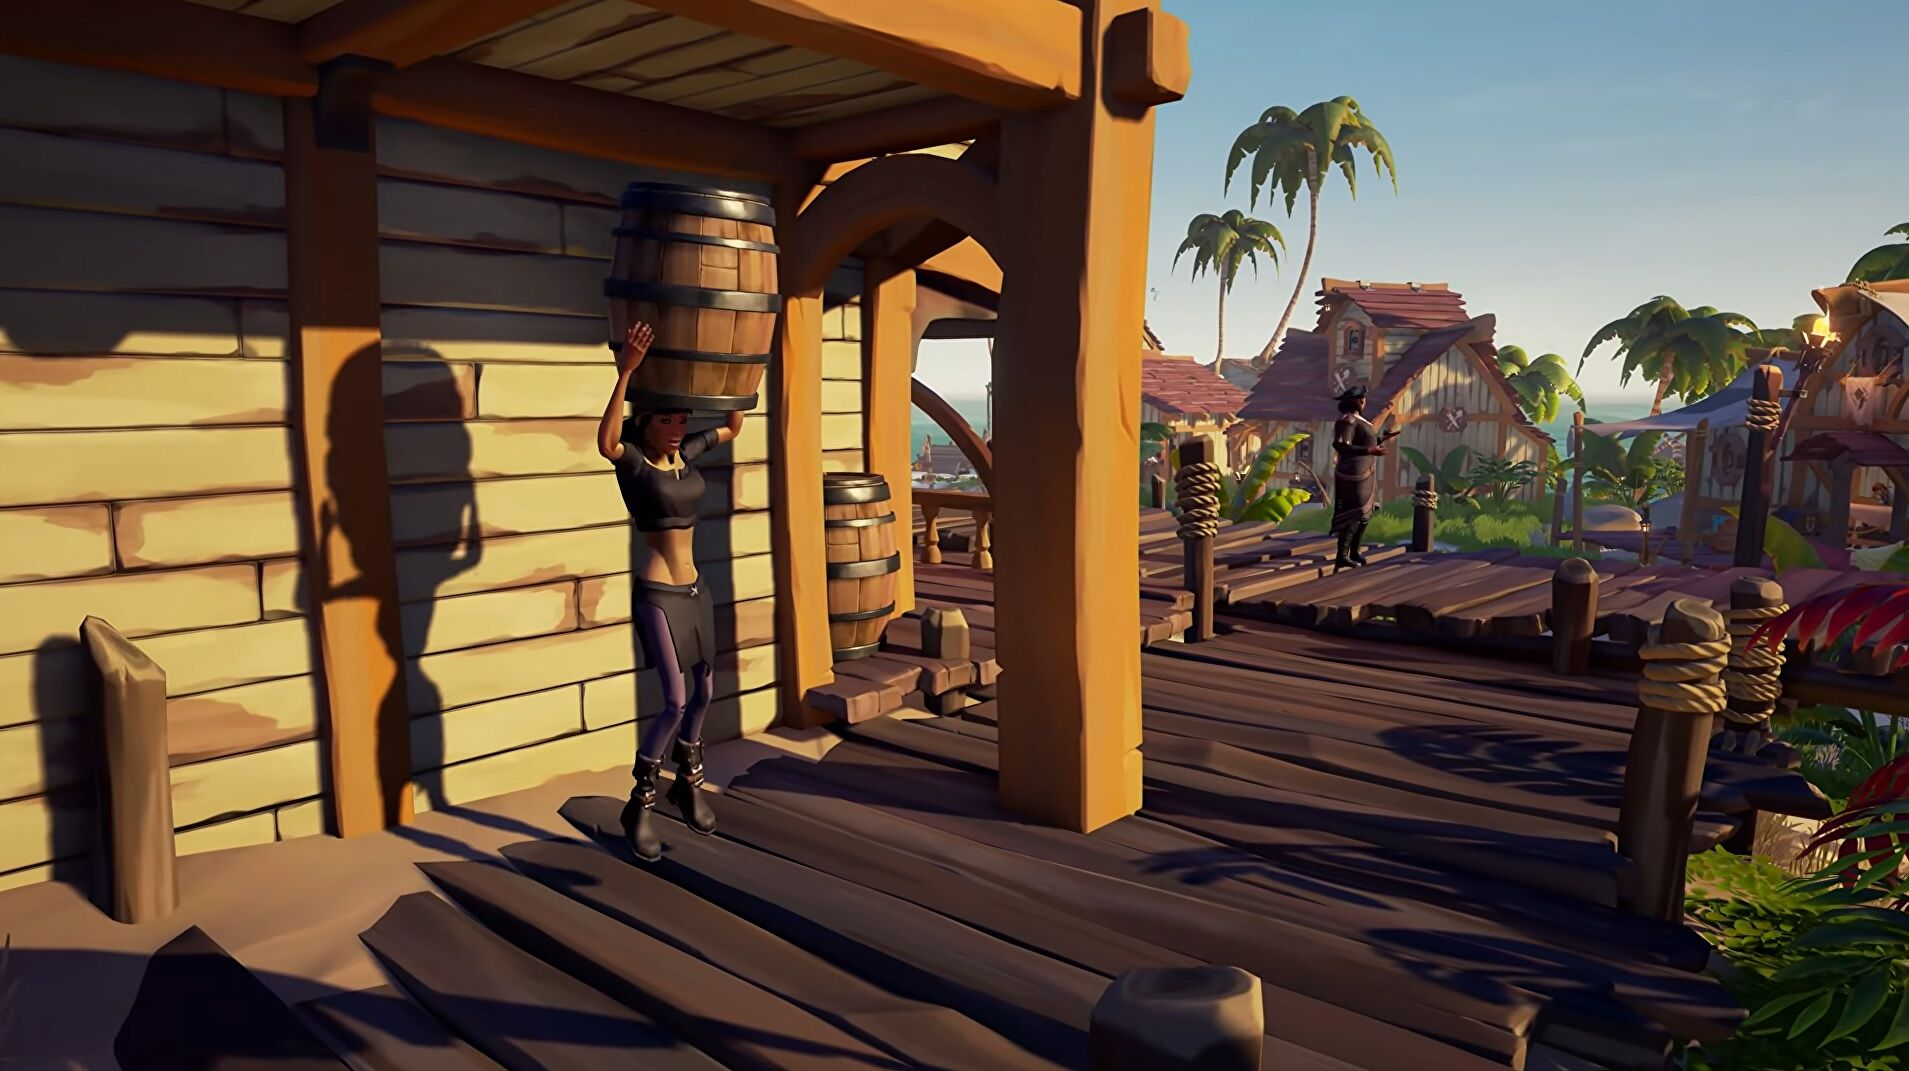 Sea Of Thieves season 2 starts next week and adds another sneaky emote